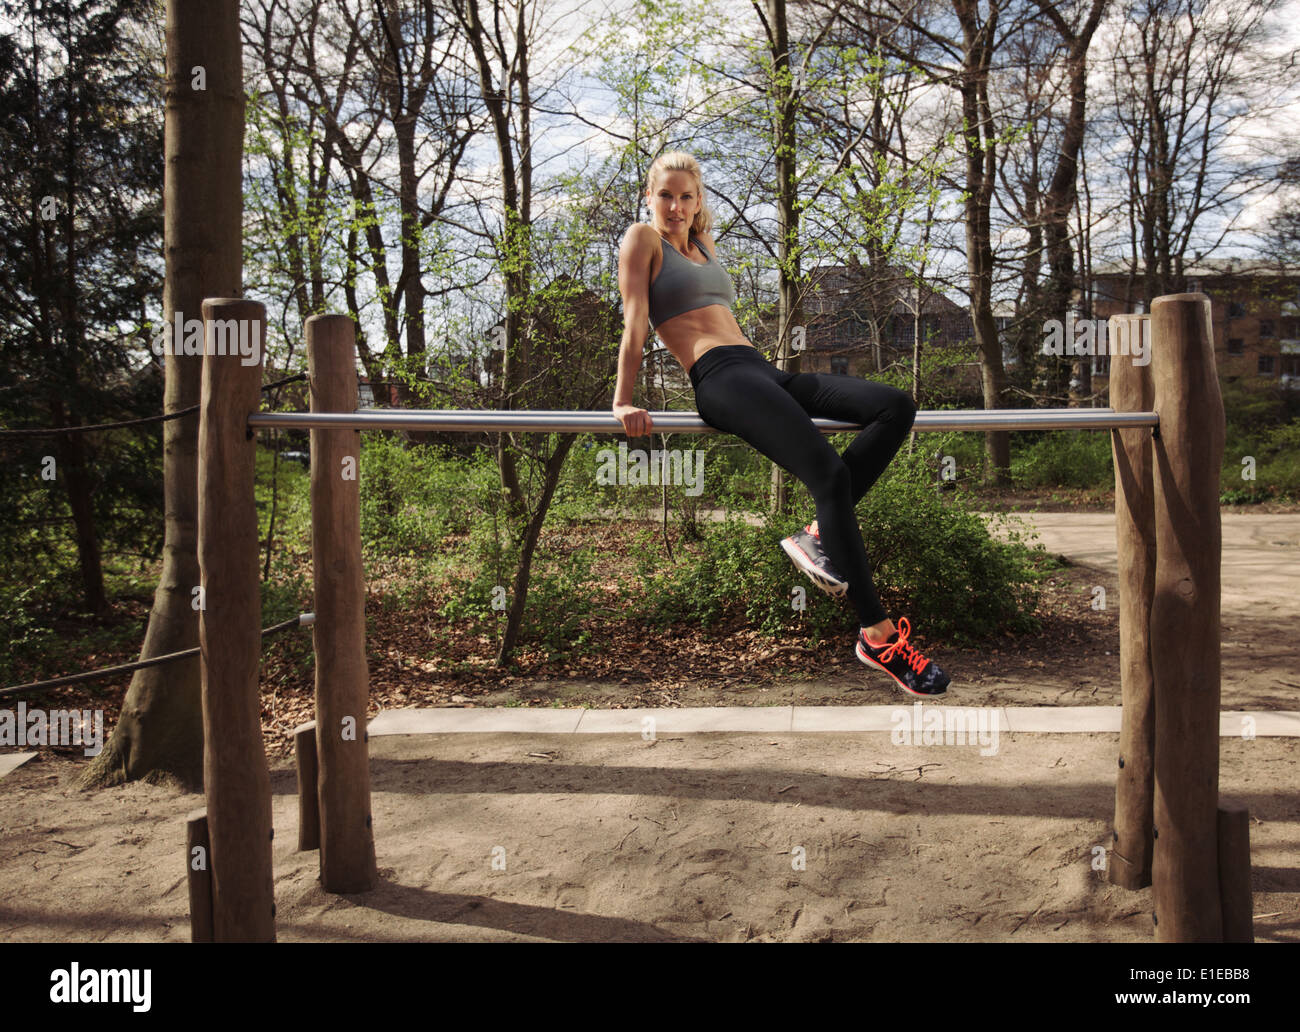 Fit young female sitting on parallel bars. Woman taking rest after triceps dips exercise at park. - Stock Image